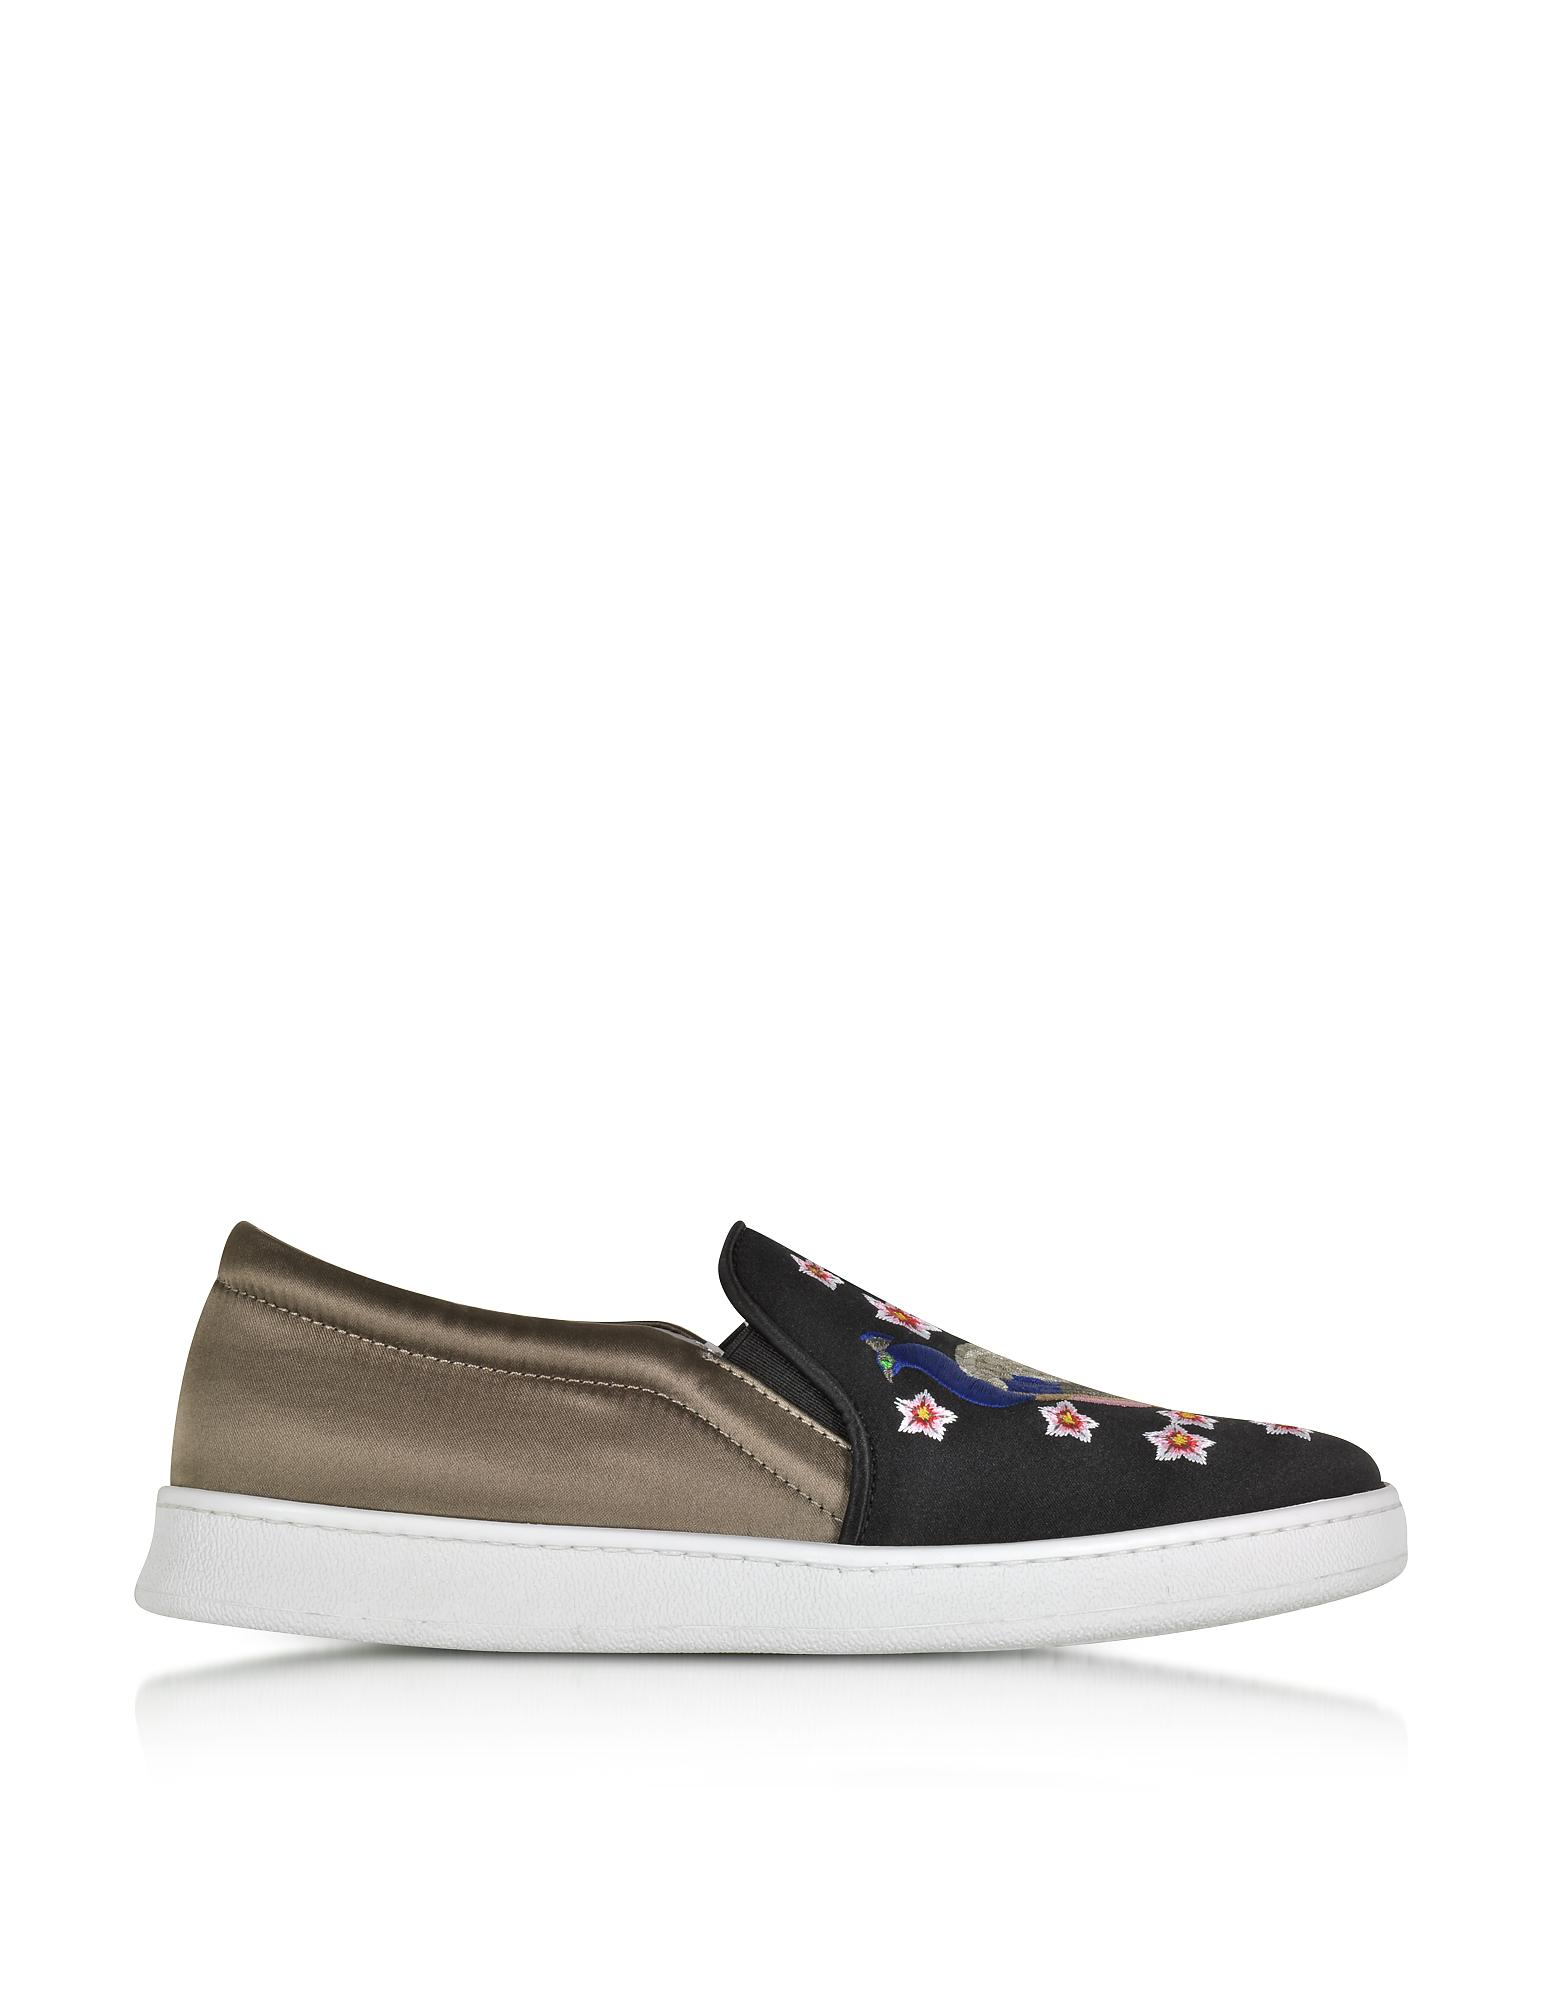 Broderie Paon Joshua Ponceuses Slip-on Chaussures De Sport - Noir zC6zHSy44